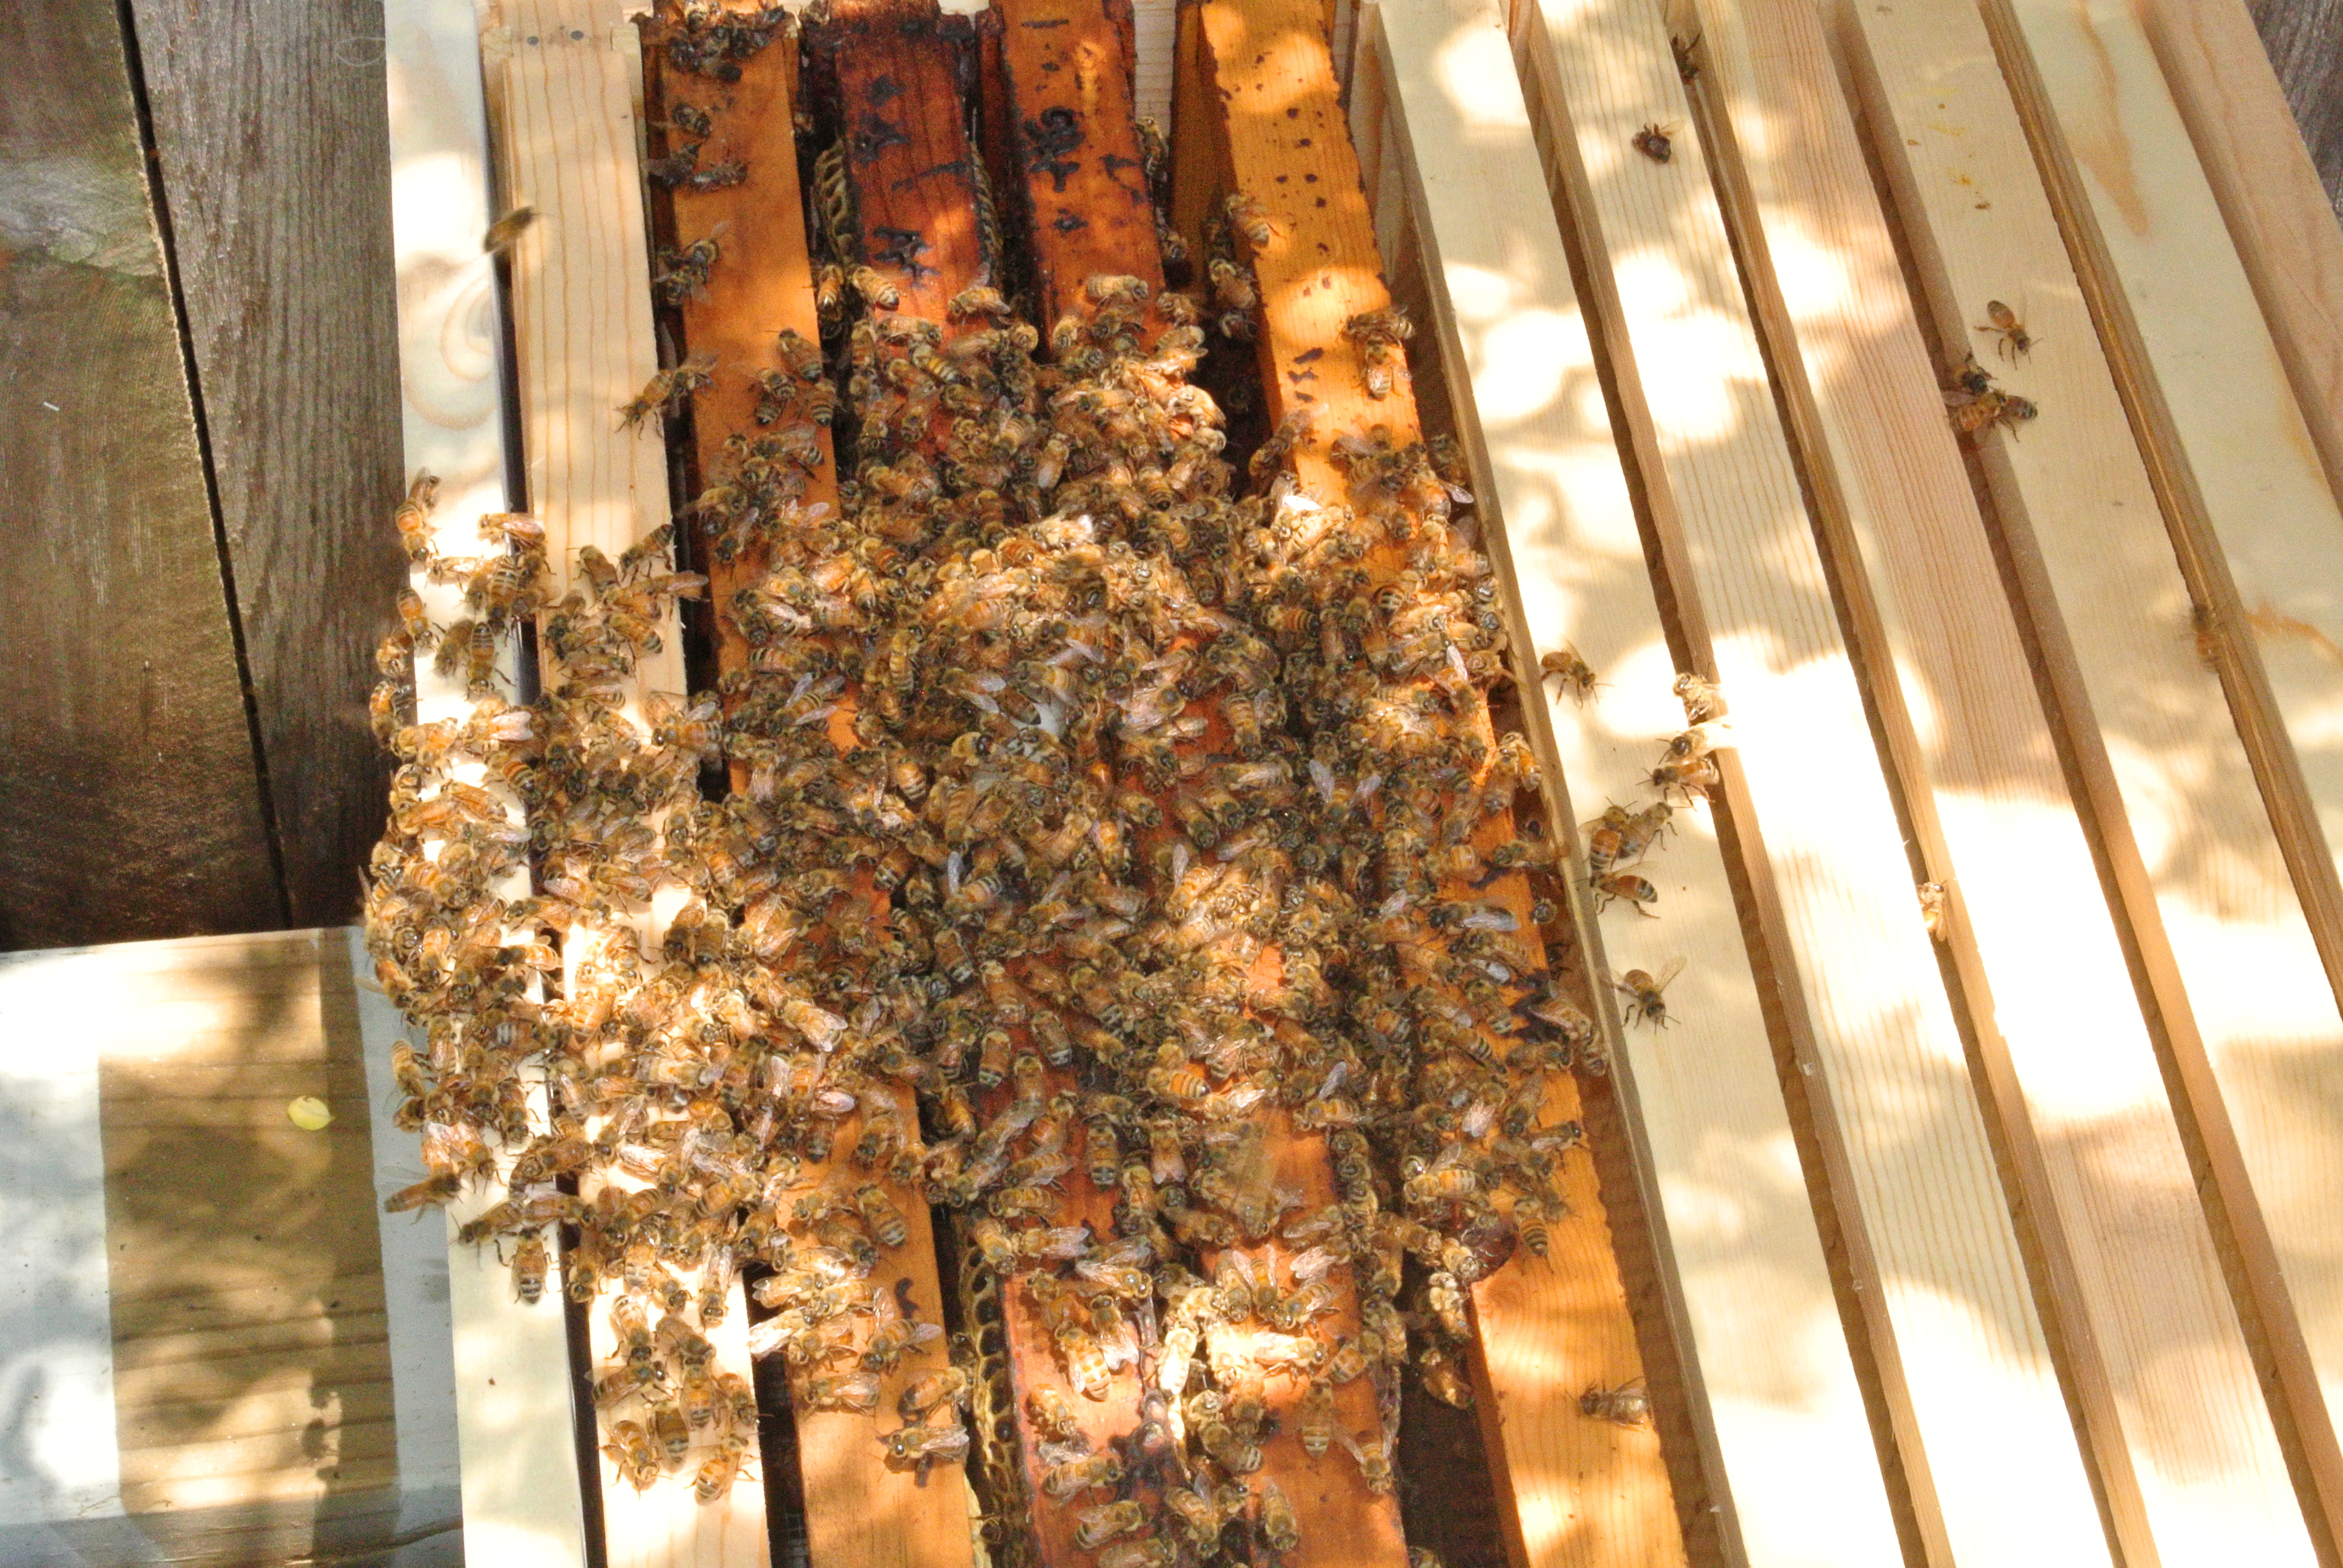 The new bees clustered around their frames installed into my hive.